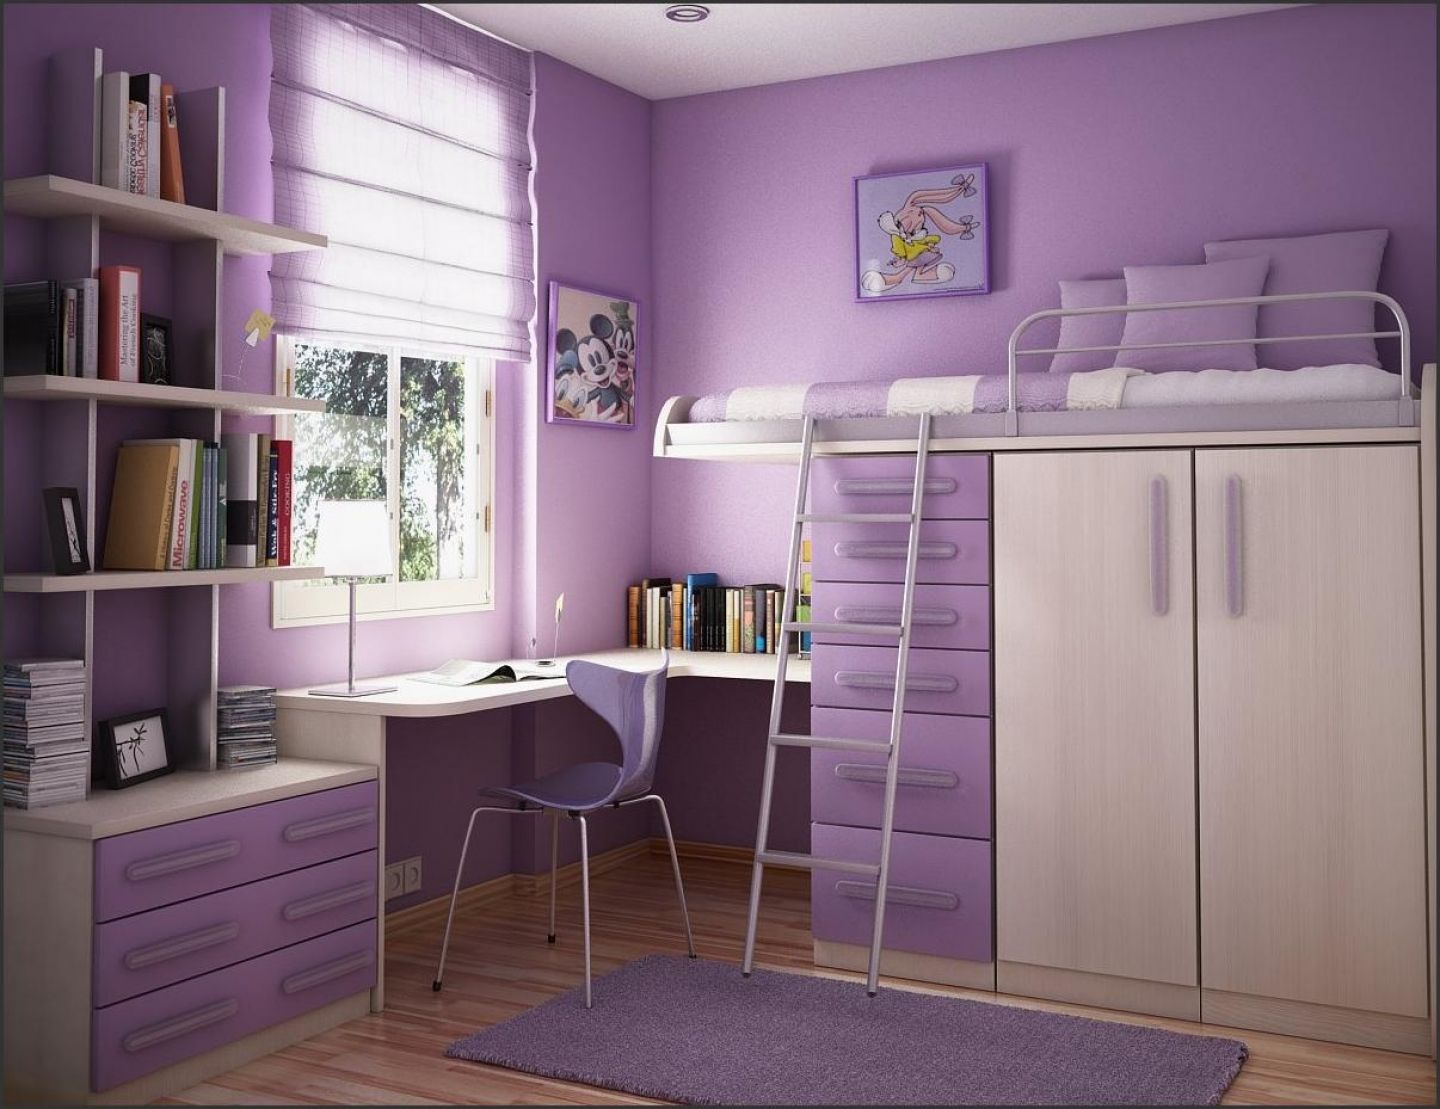 teen girl bedroom decorating ideas 06 13 1403 - Tween Girls Bedroom Decorating Ideas